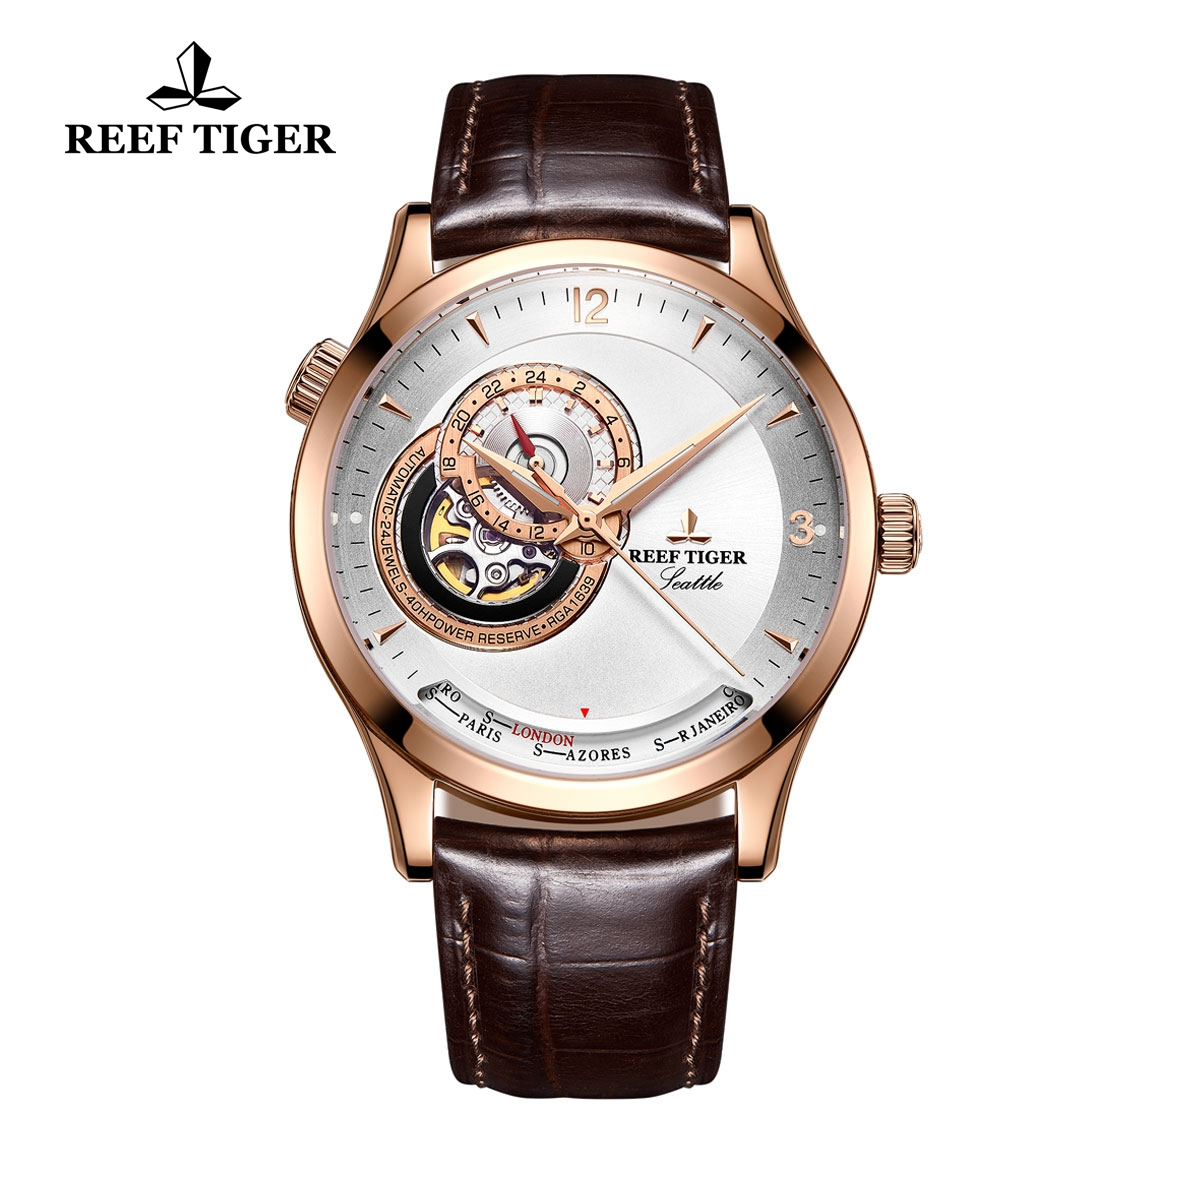 Reef Tiger Seattle Sailing Rose Gold Brown Leather Watch With Tourbillon Automatic Watch RGA1693-PWS